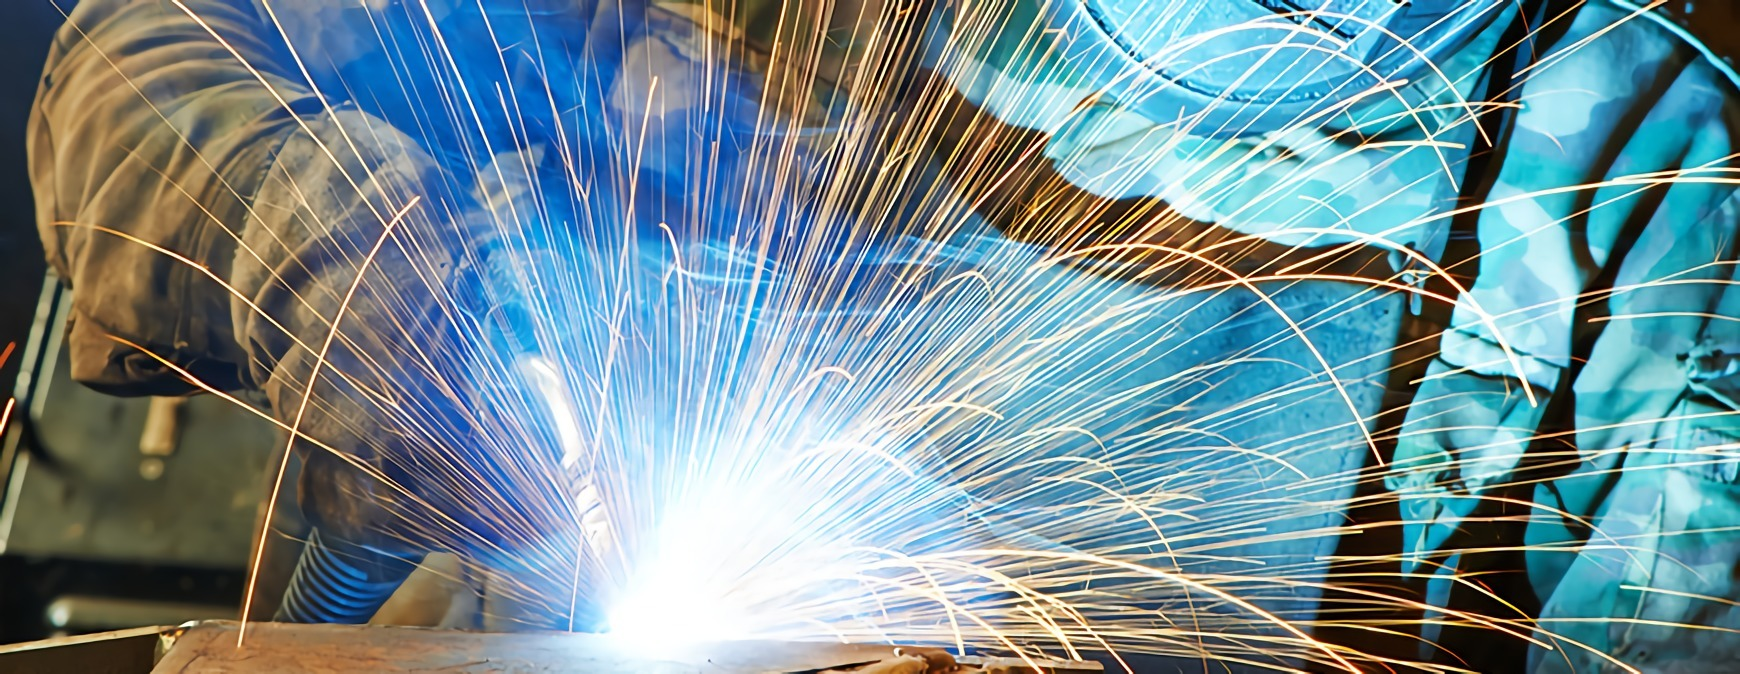 welding with electrode